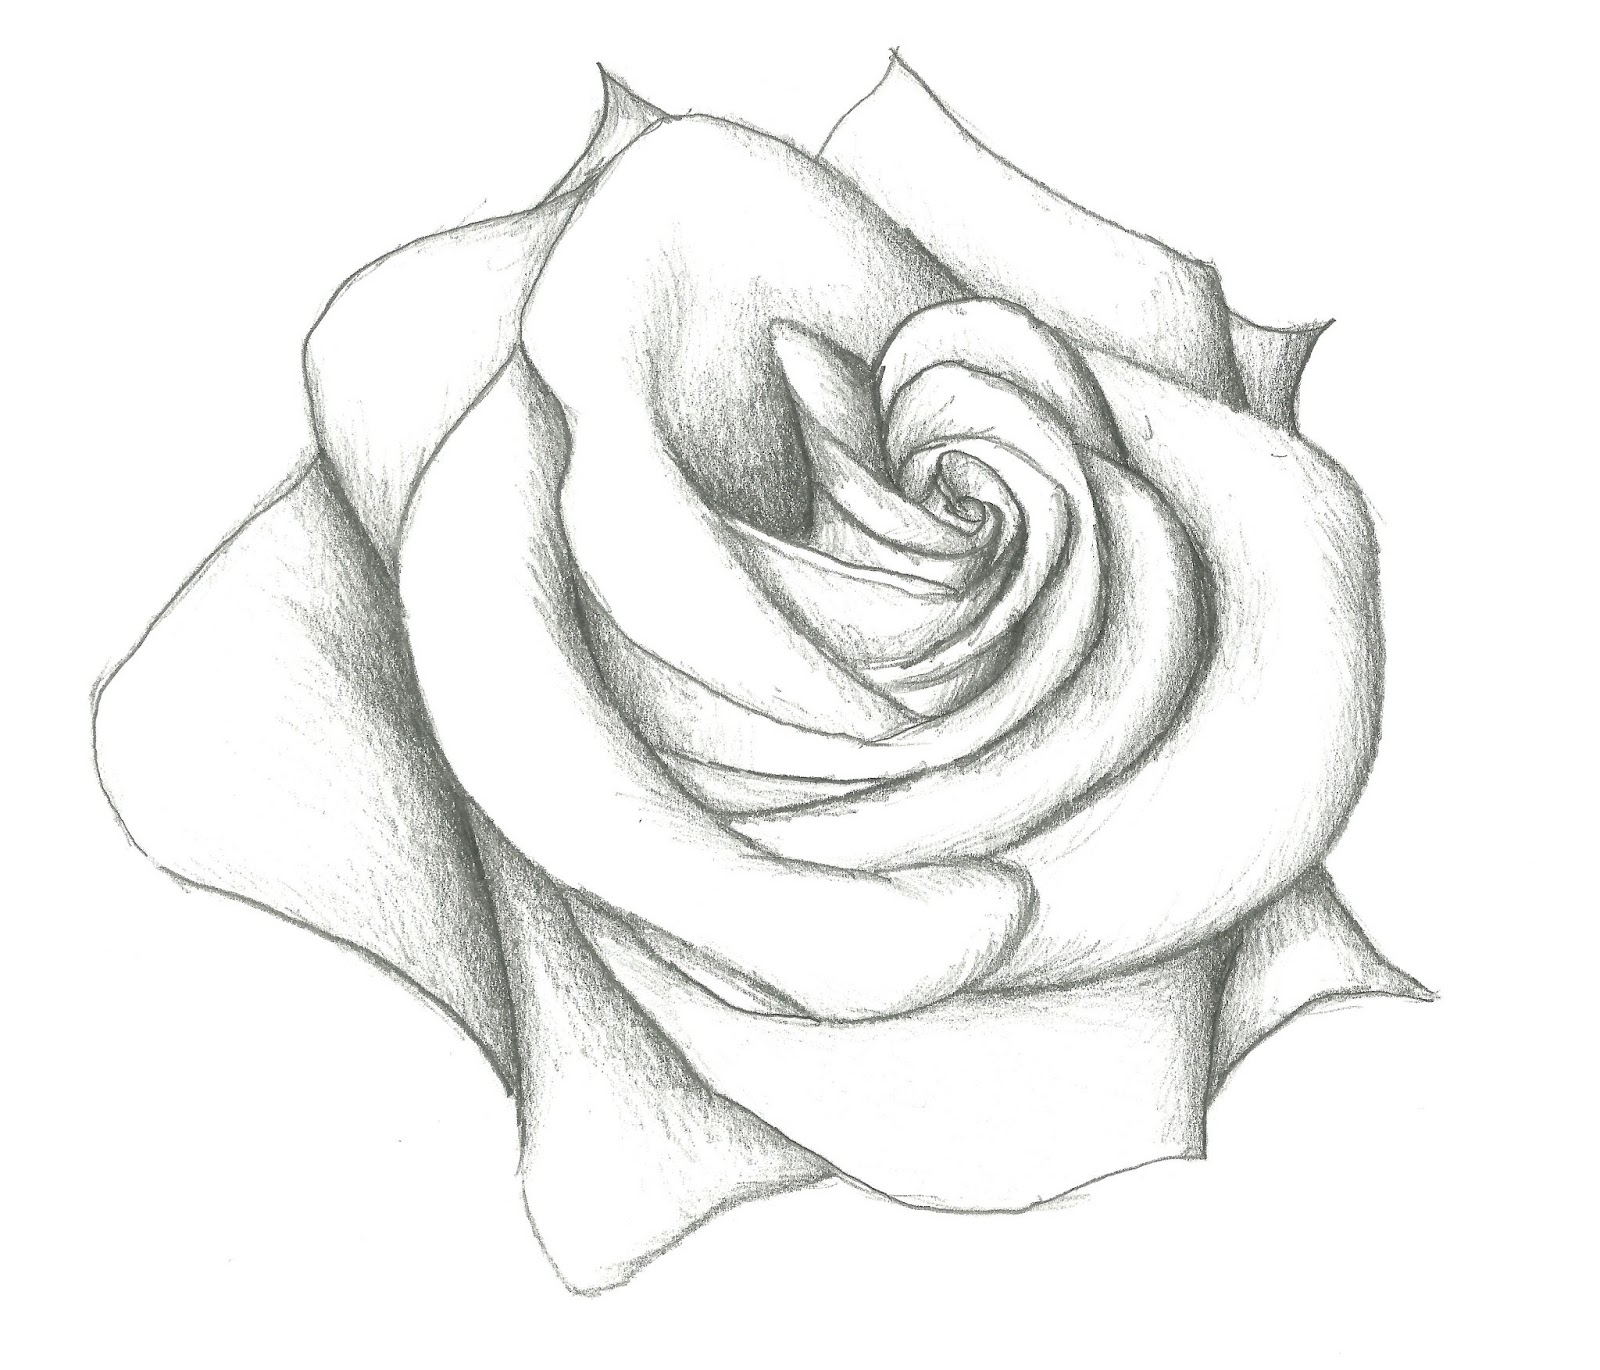 1600x1370 Pencil Sketches Of Hearts And Roses Hearts Drawings In Pencil